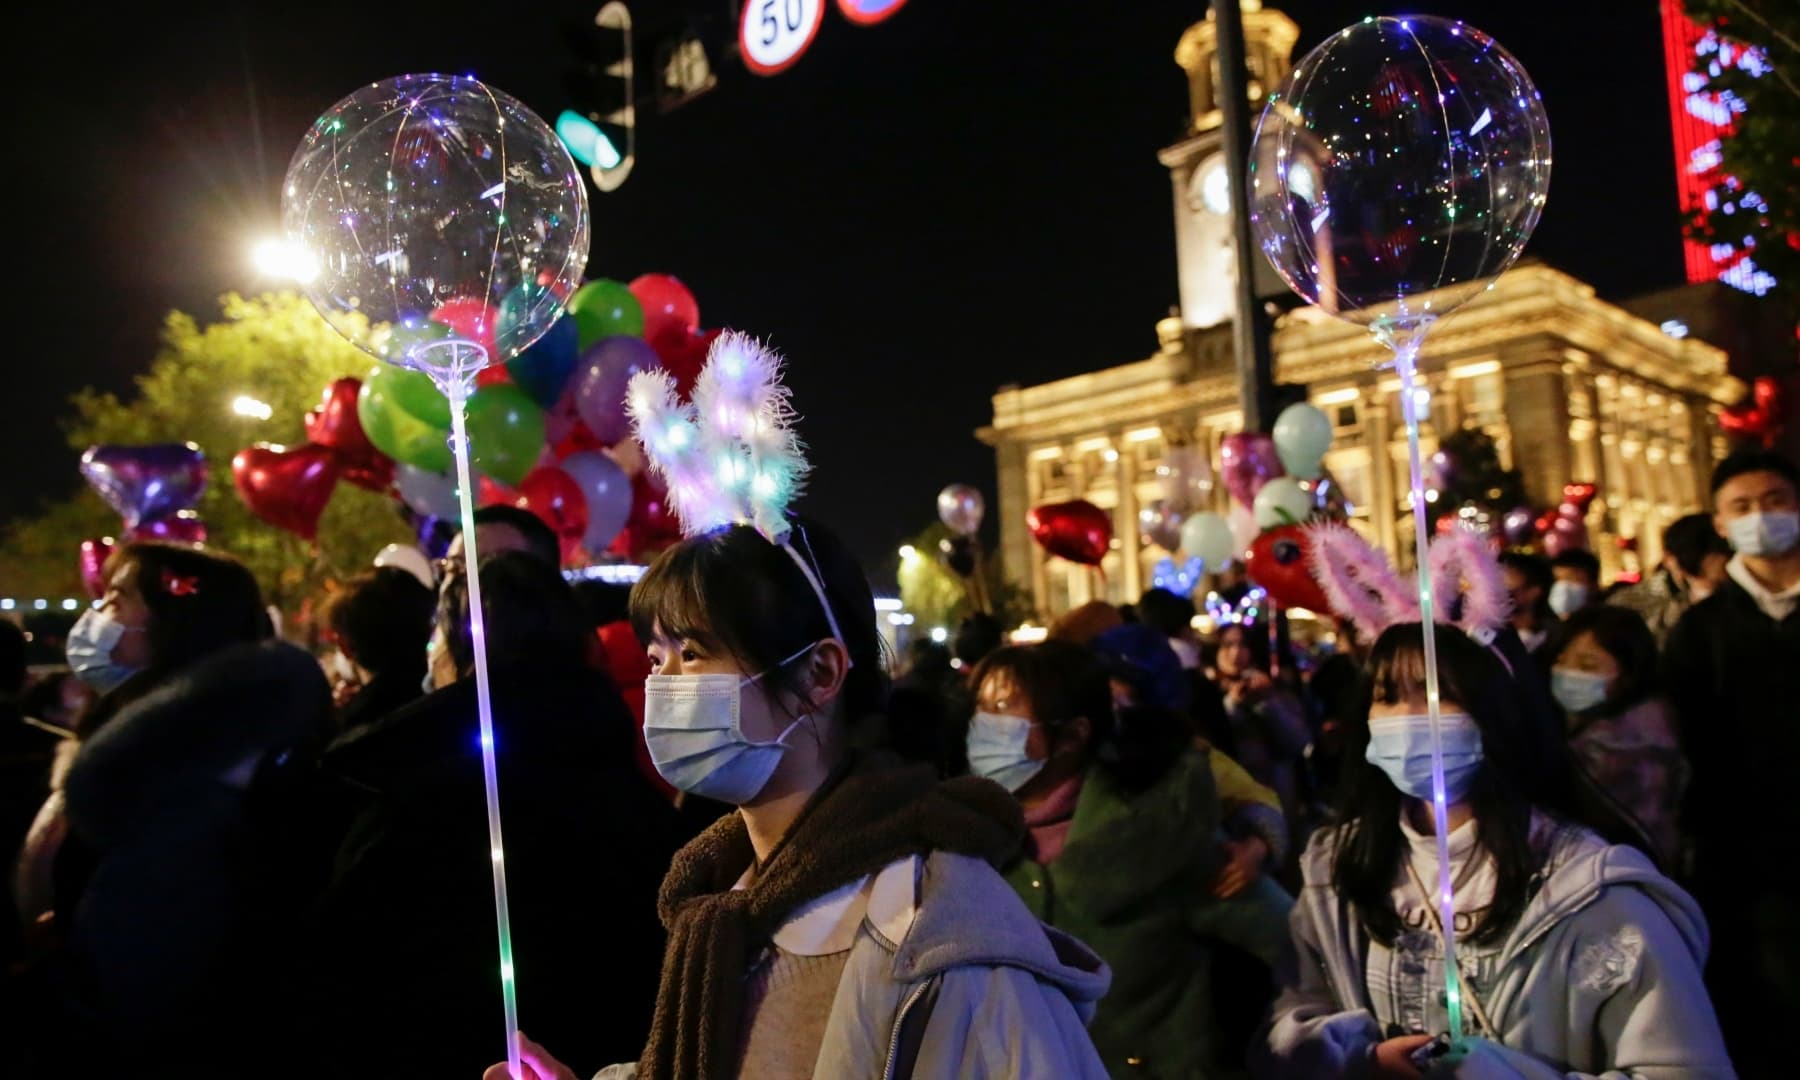 Women hold light balloons as people gather to celebrate the arrival of the new year during the coronavirus outbreak in Wuhan, China, Dec 31. — Reuters